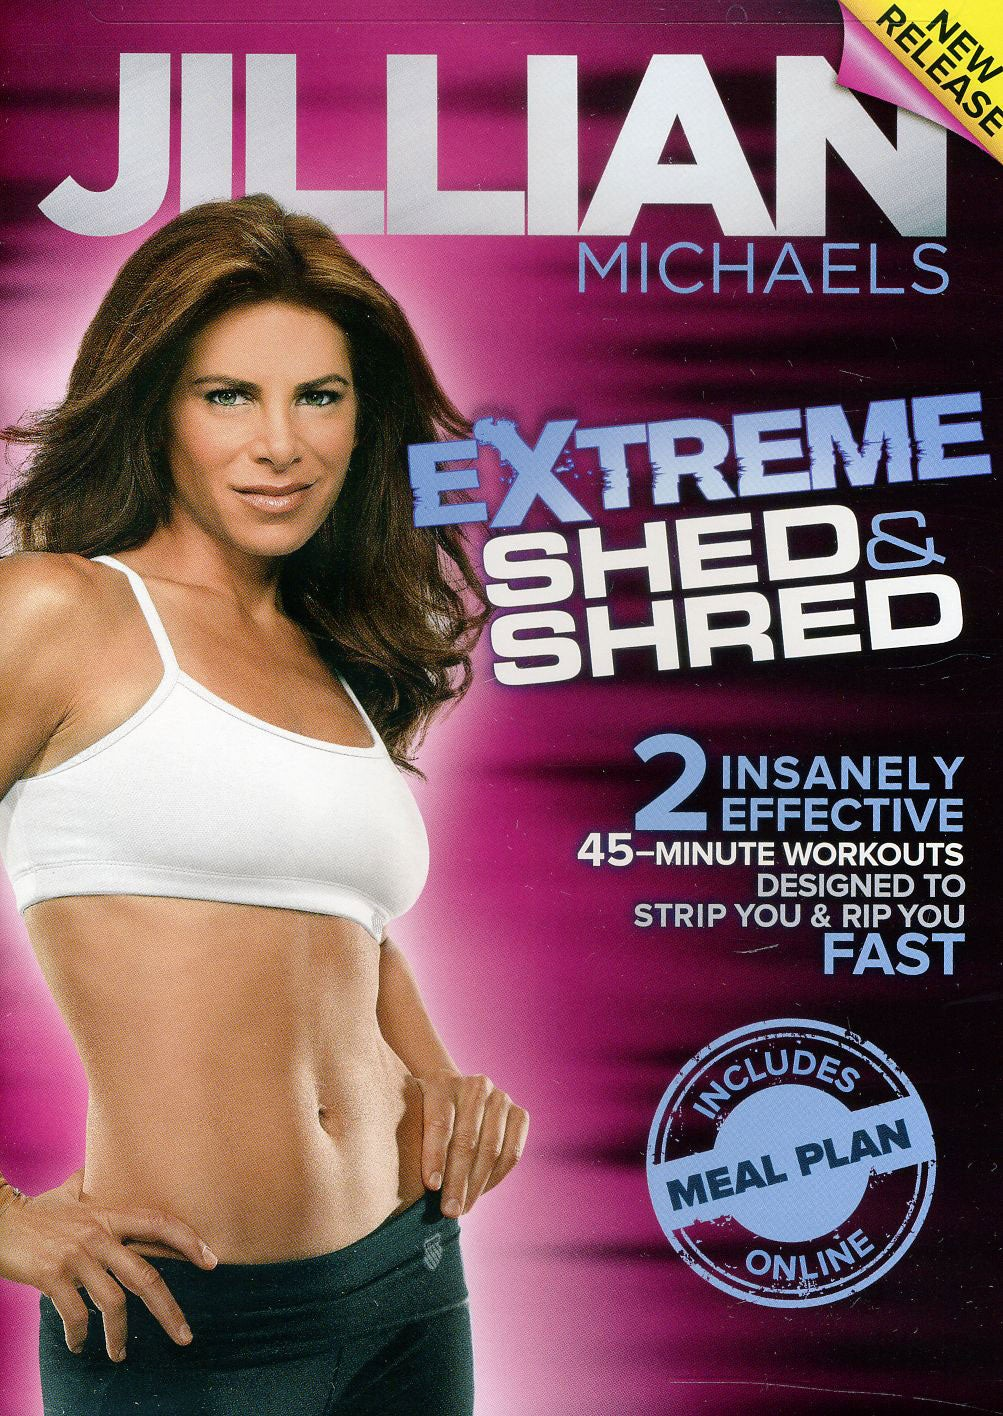 Jillian Michaels: Extreme Shed & Shred (DVD)